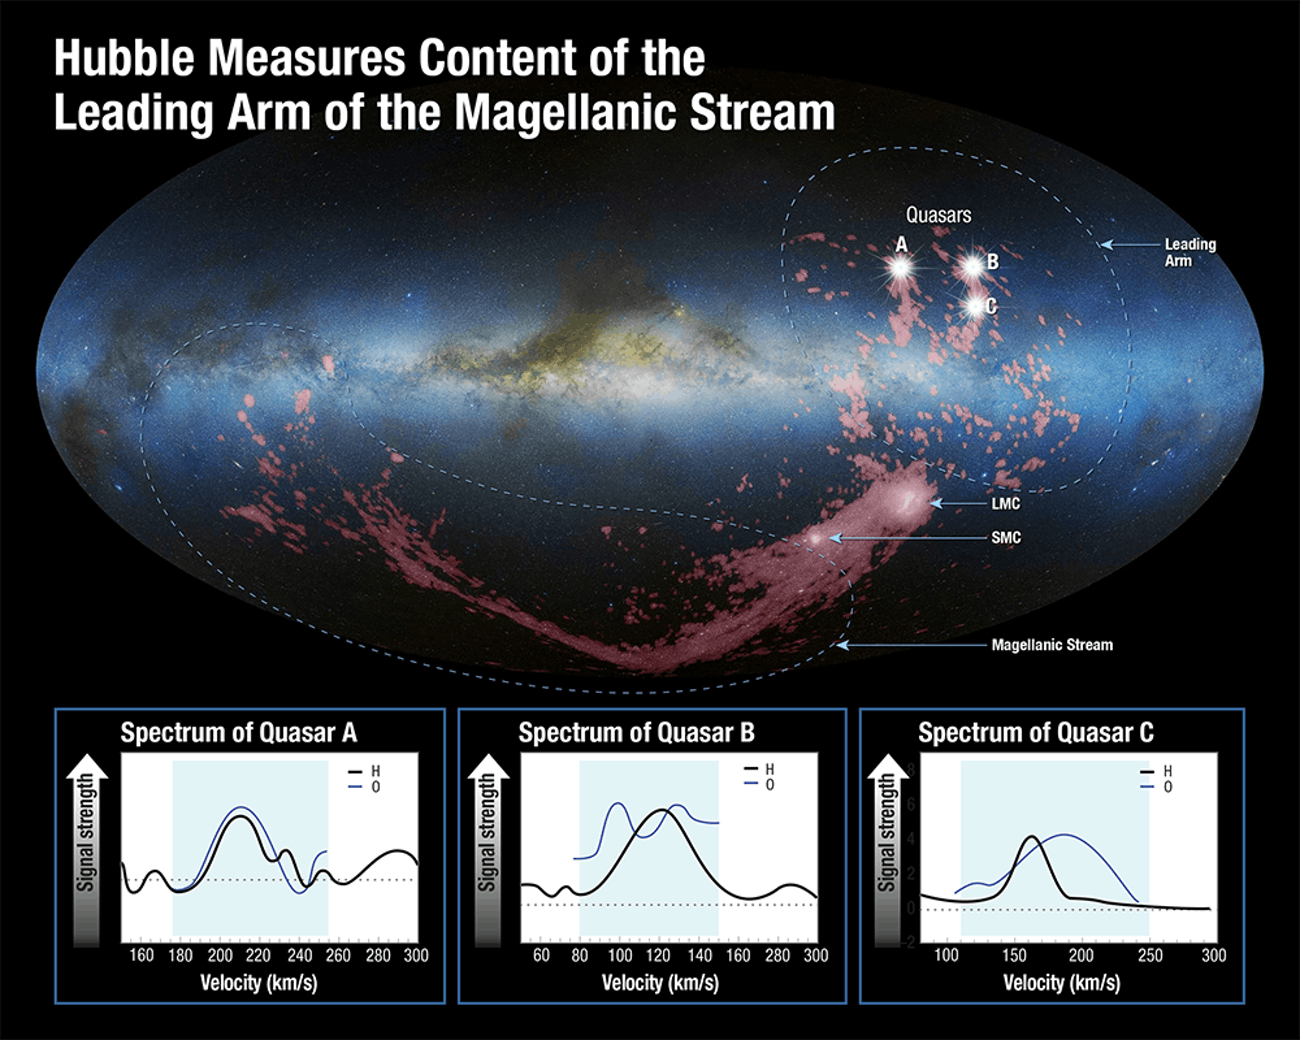 Hubble measures content of the Leading Arm of the Magellanic Stream.